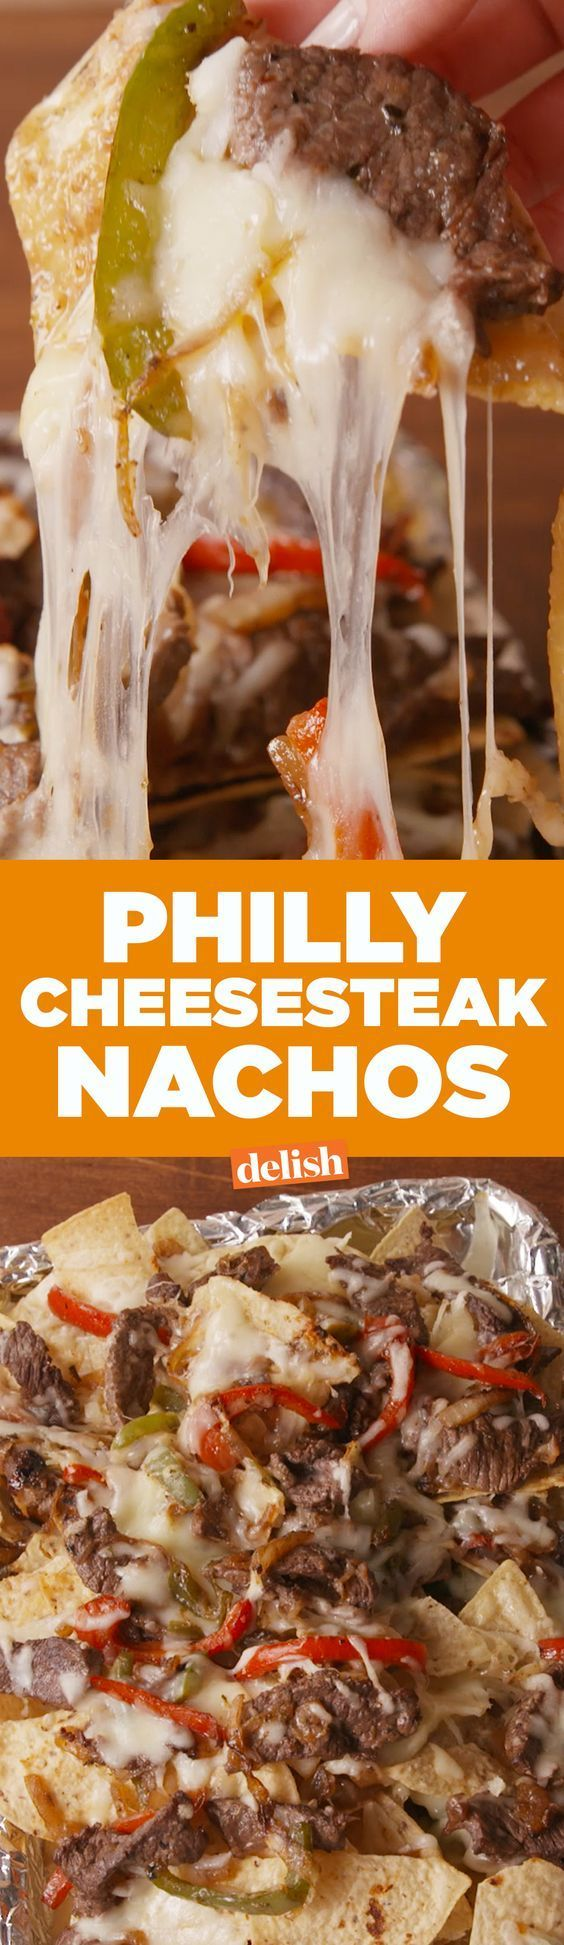 Cheesesteak Nachos Philly Cheesesteak Nachos deserve the top seed in your bracket. Get the recipe on .Philly Cheesesteak Nachos deserve the top seed in your bracket. Get the recipe on .